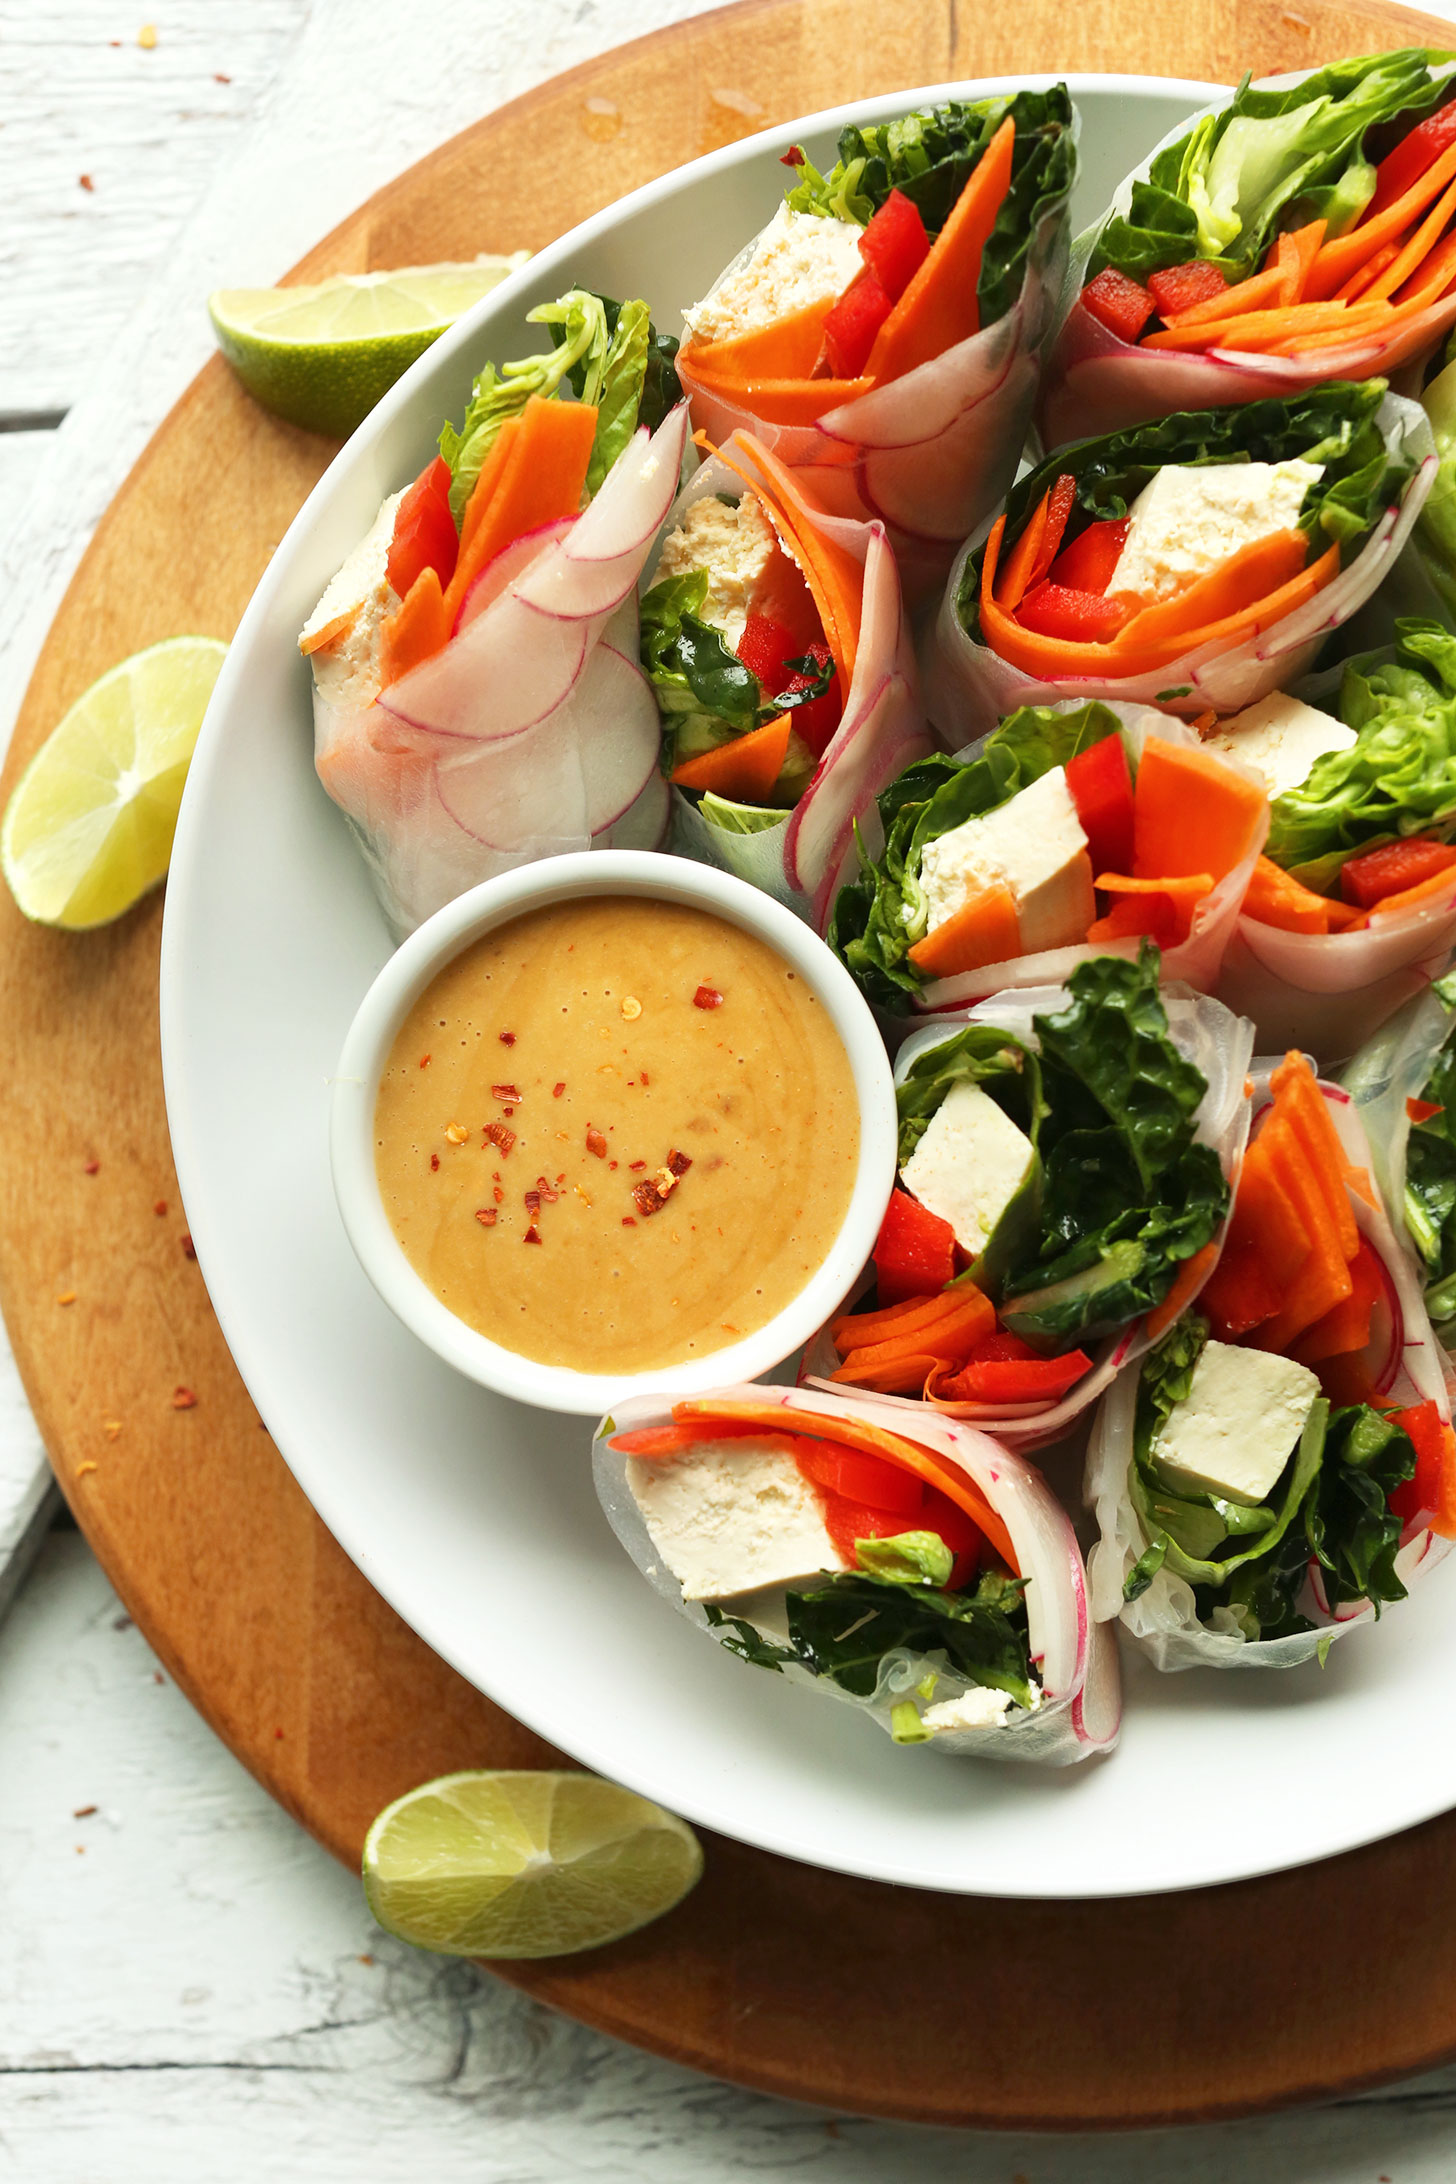 Thai Spring Rolls arranged in a bowl alongside homemade Cashew Dipping Sauce